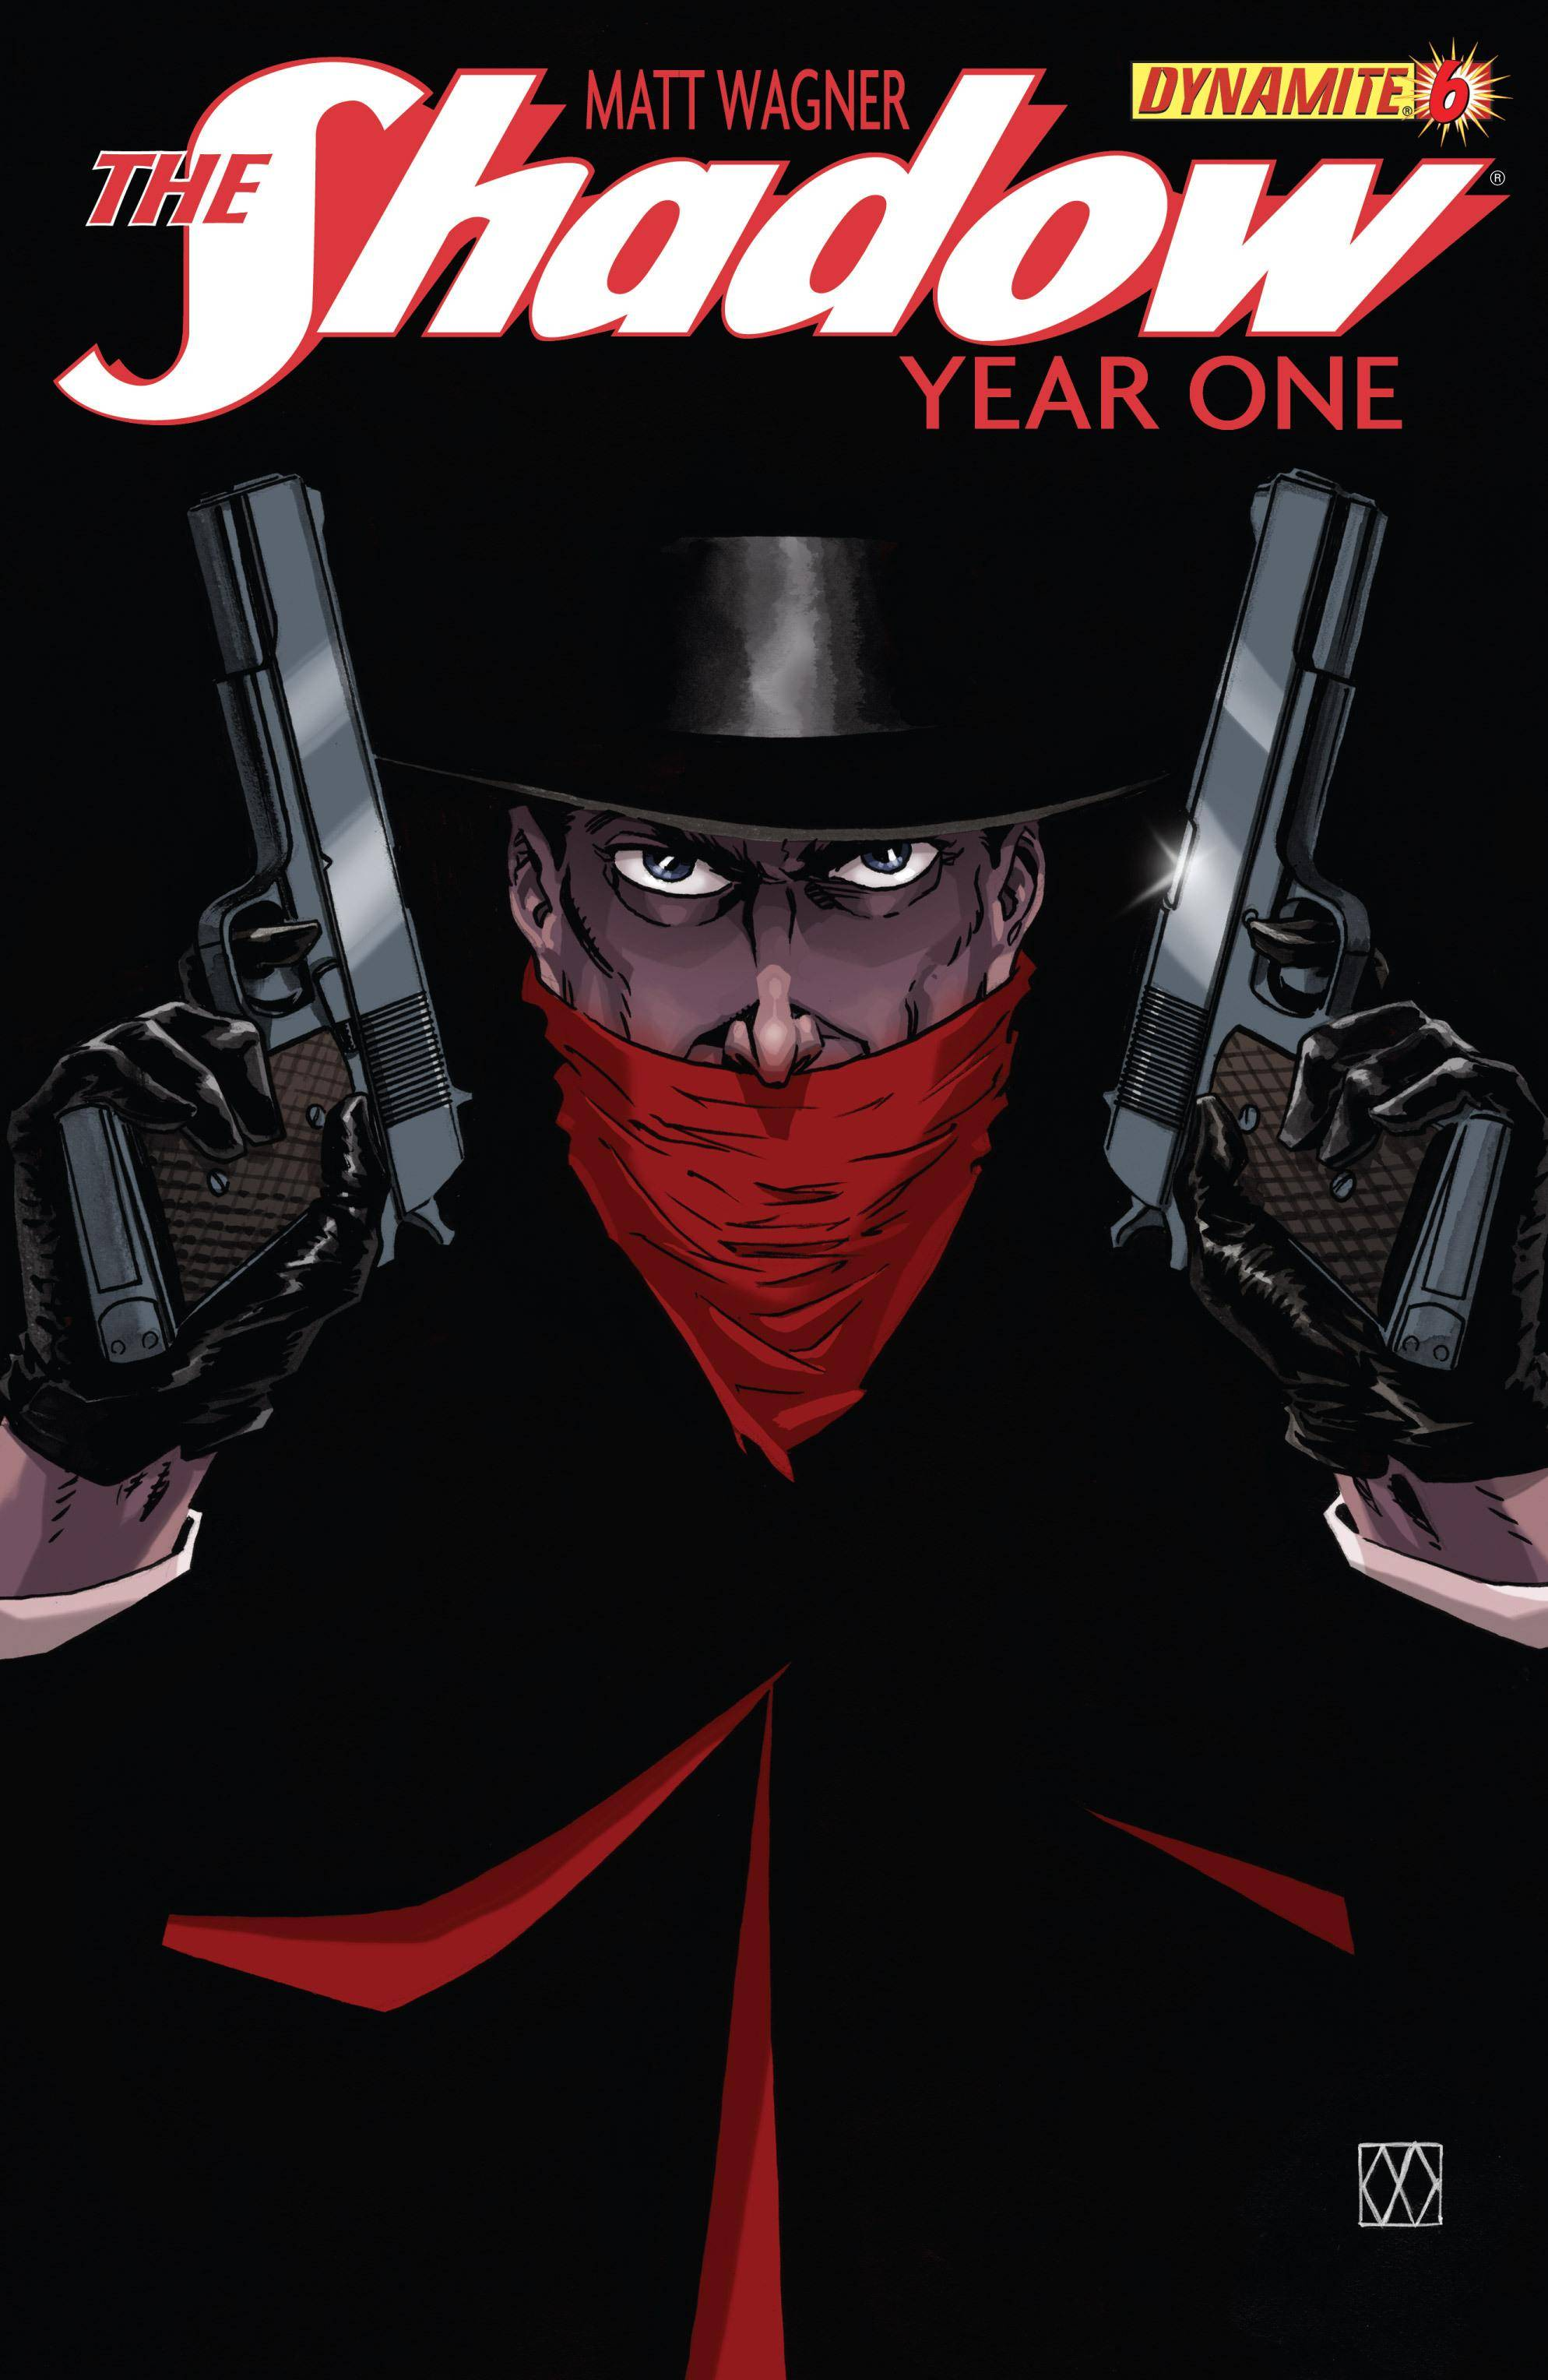 The Shadow - Year One 06 (of 10) (2013) (5 Covers) (Digital) (Darkness-Empire)